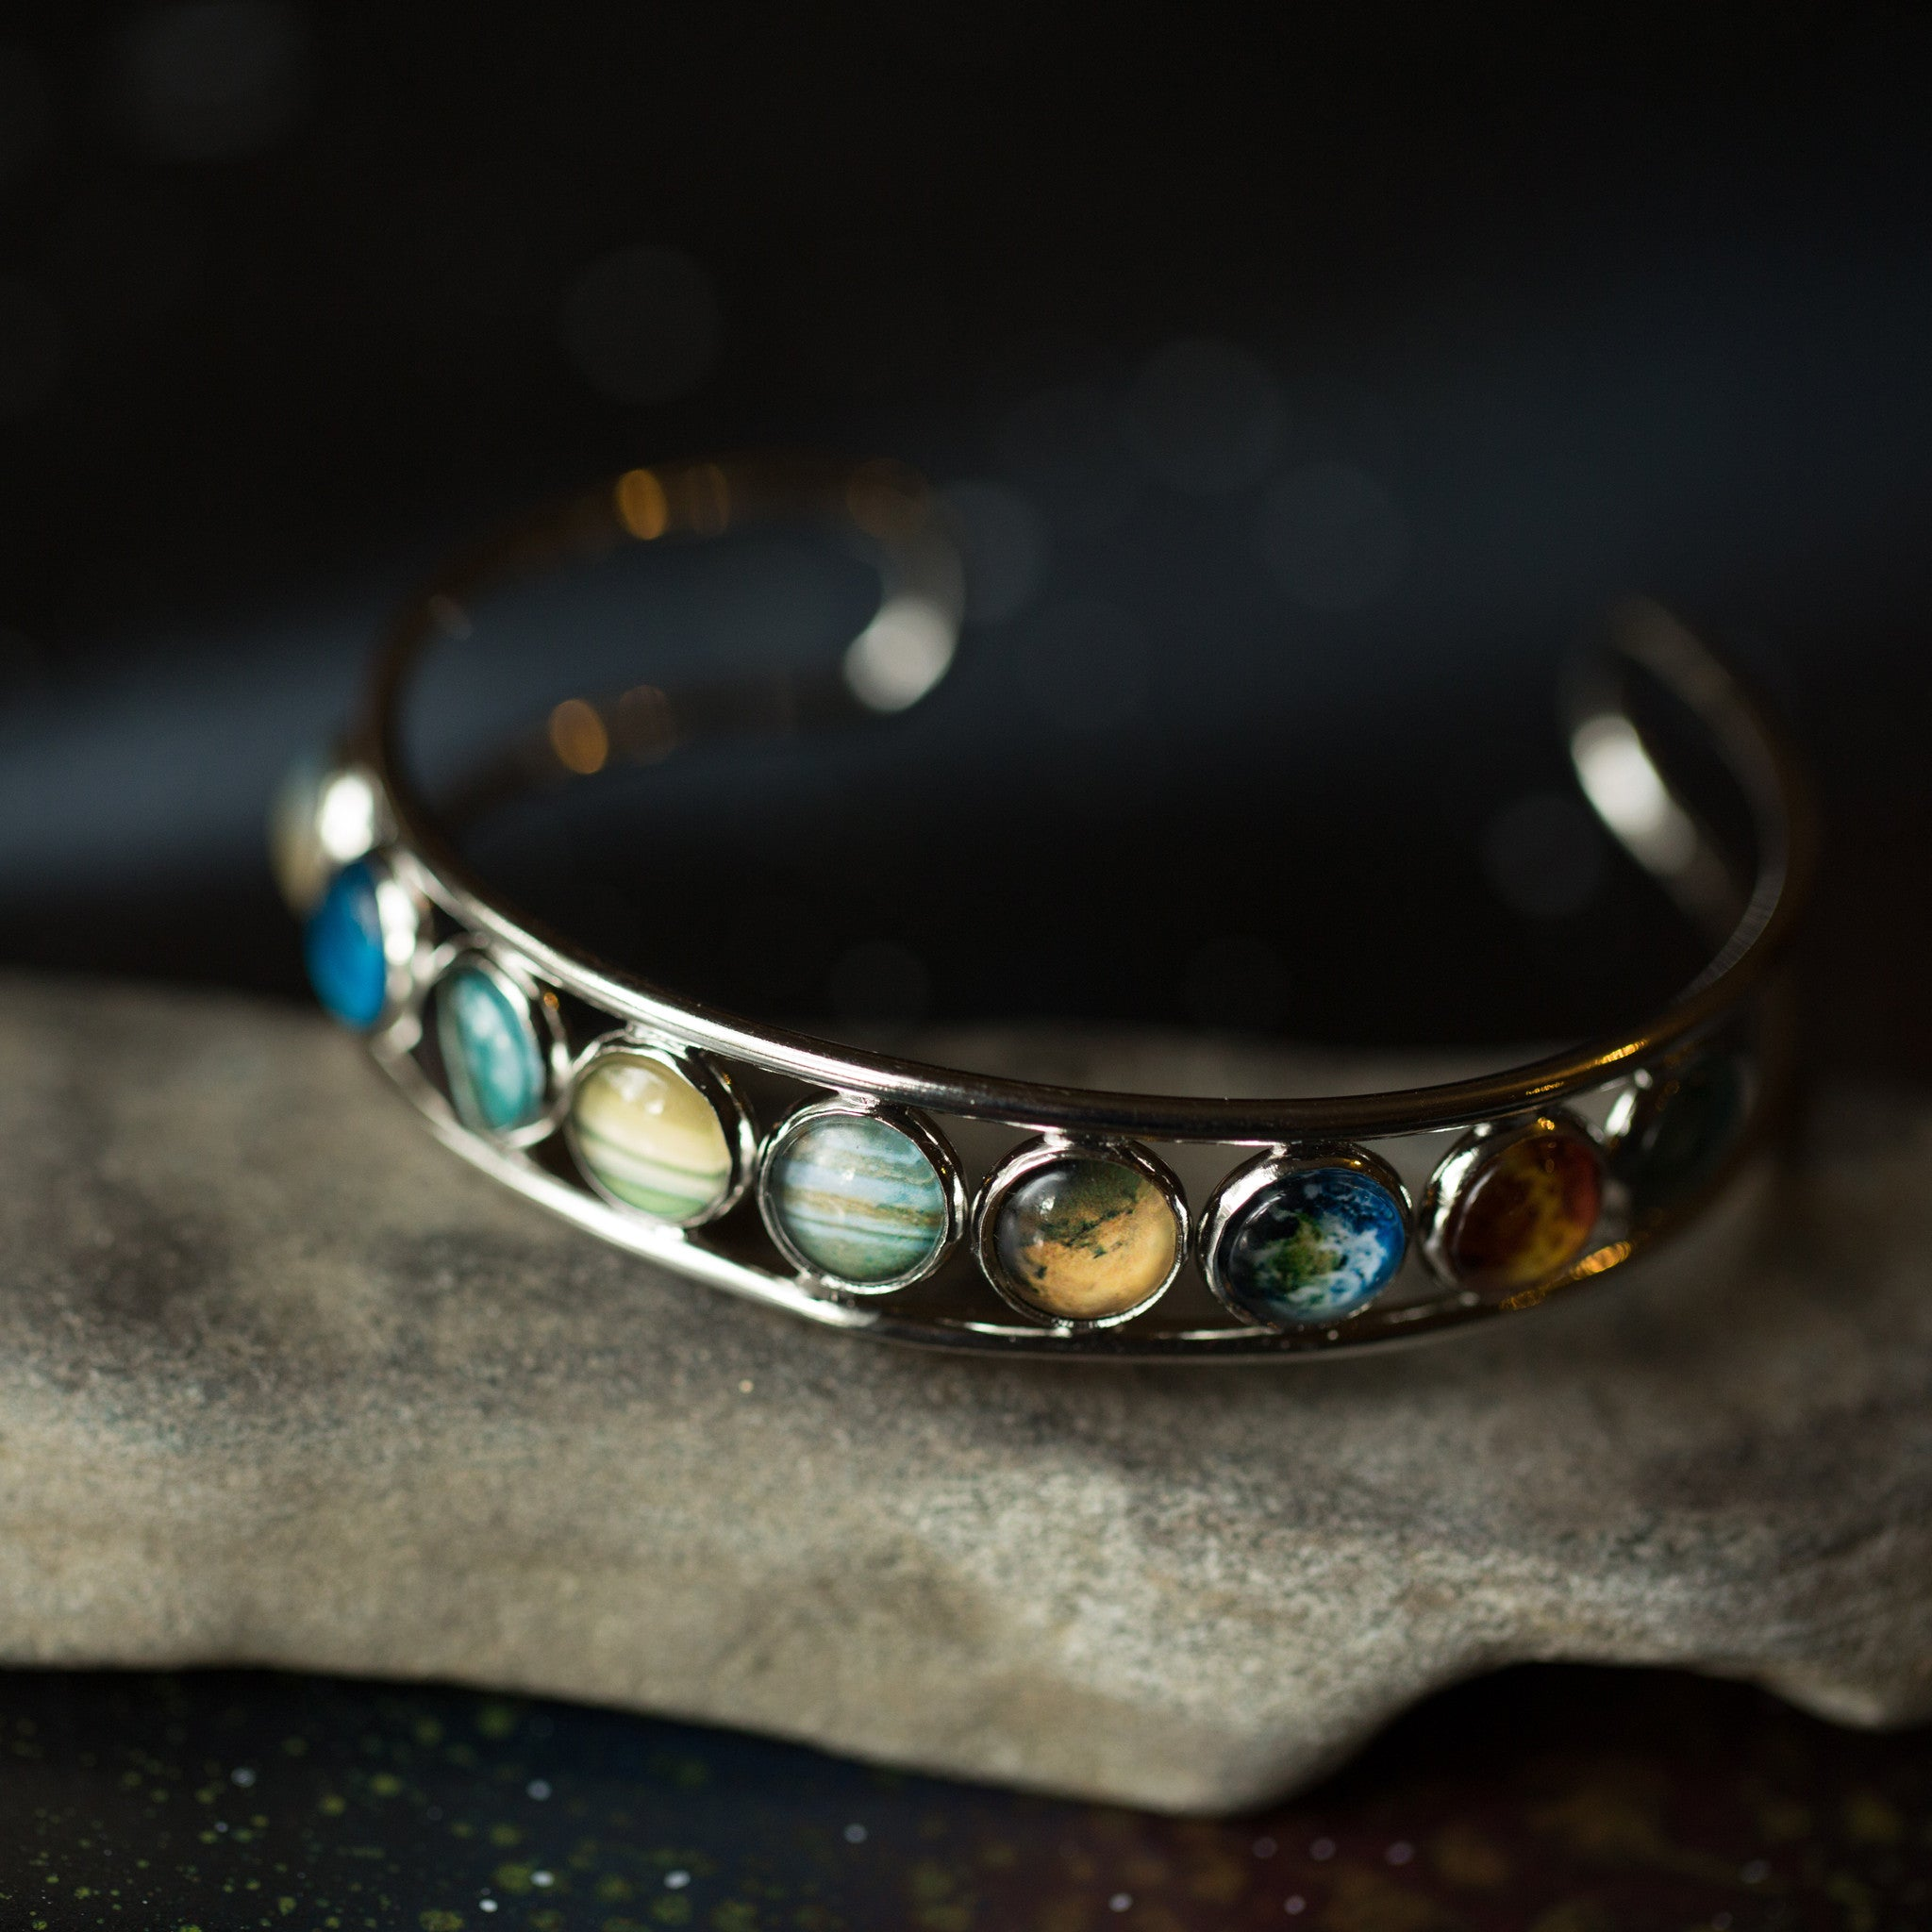 Silver Solar System Bangle Cuff Bracelet with aligned bezels - Features 9 planets including pluto - milky way galaxy bracelet in silver tone, astronomy jewellery by yugentribe